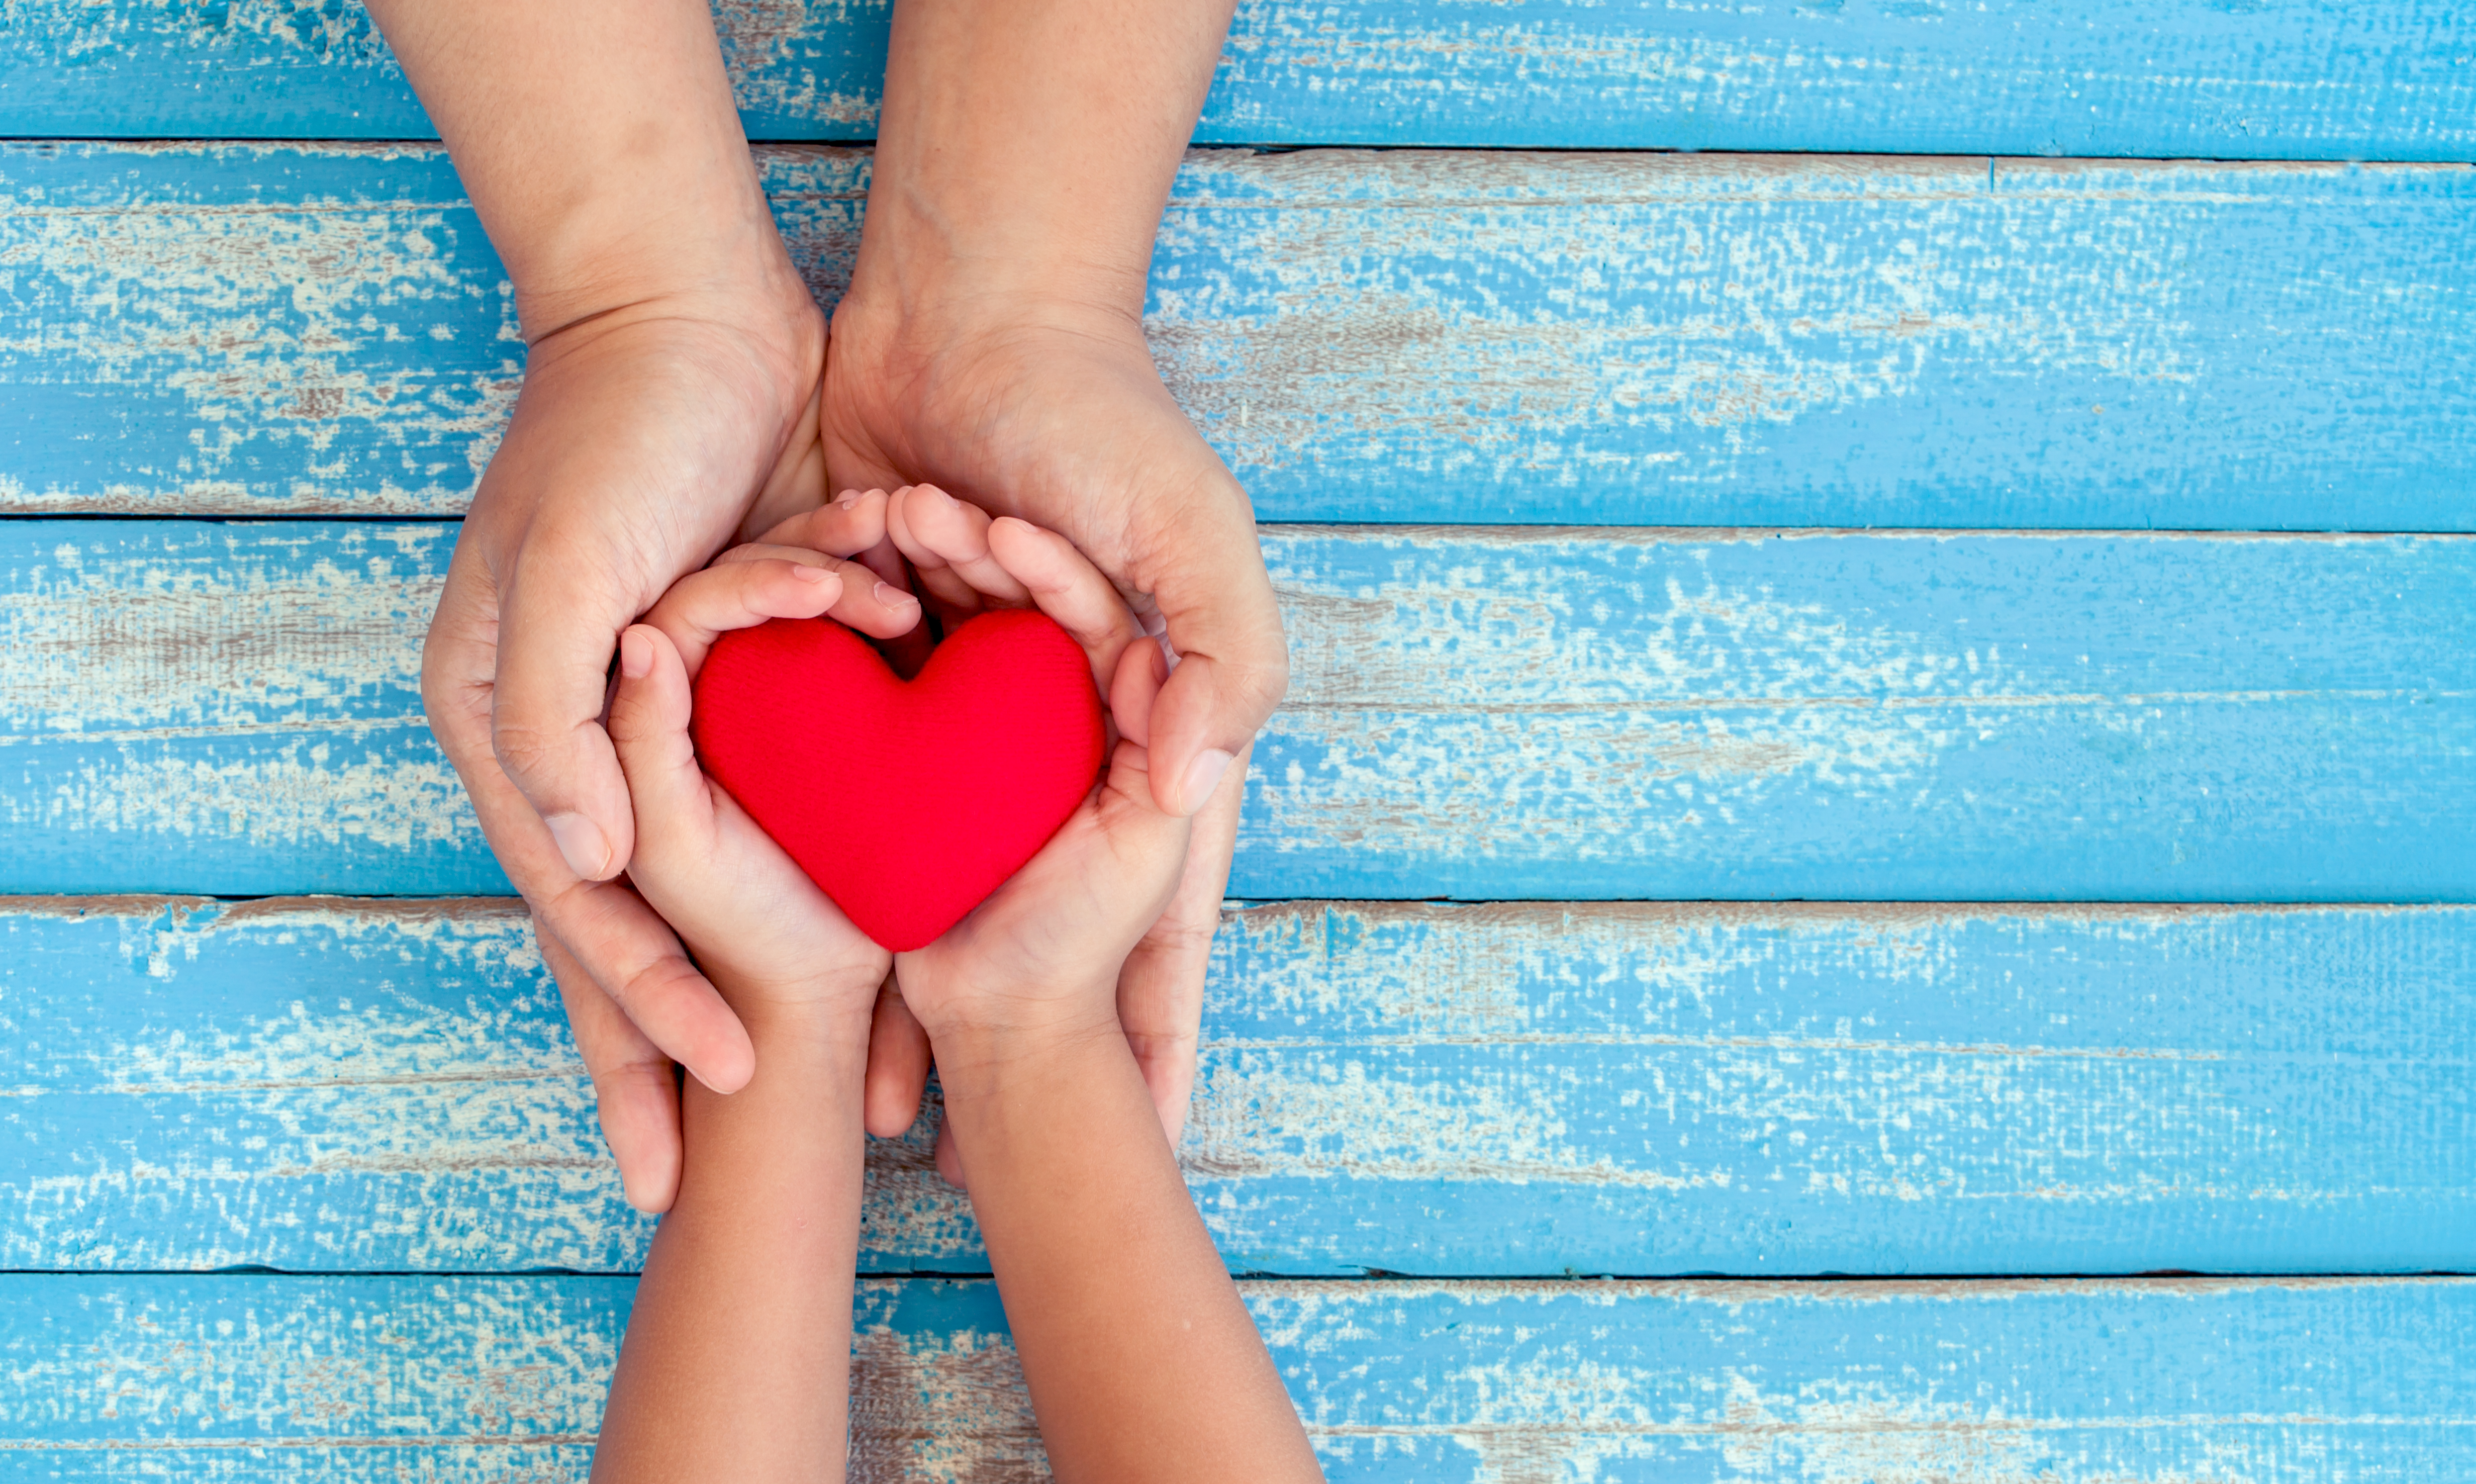 Charitable giving during COVID-19: What to consider